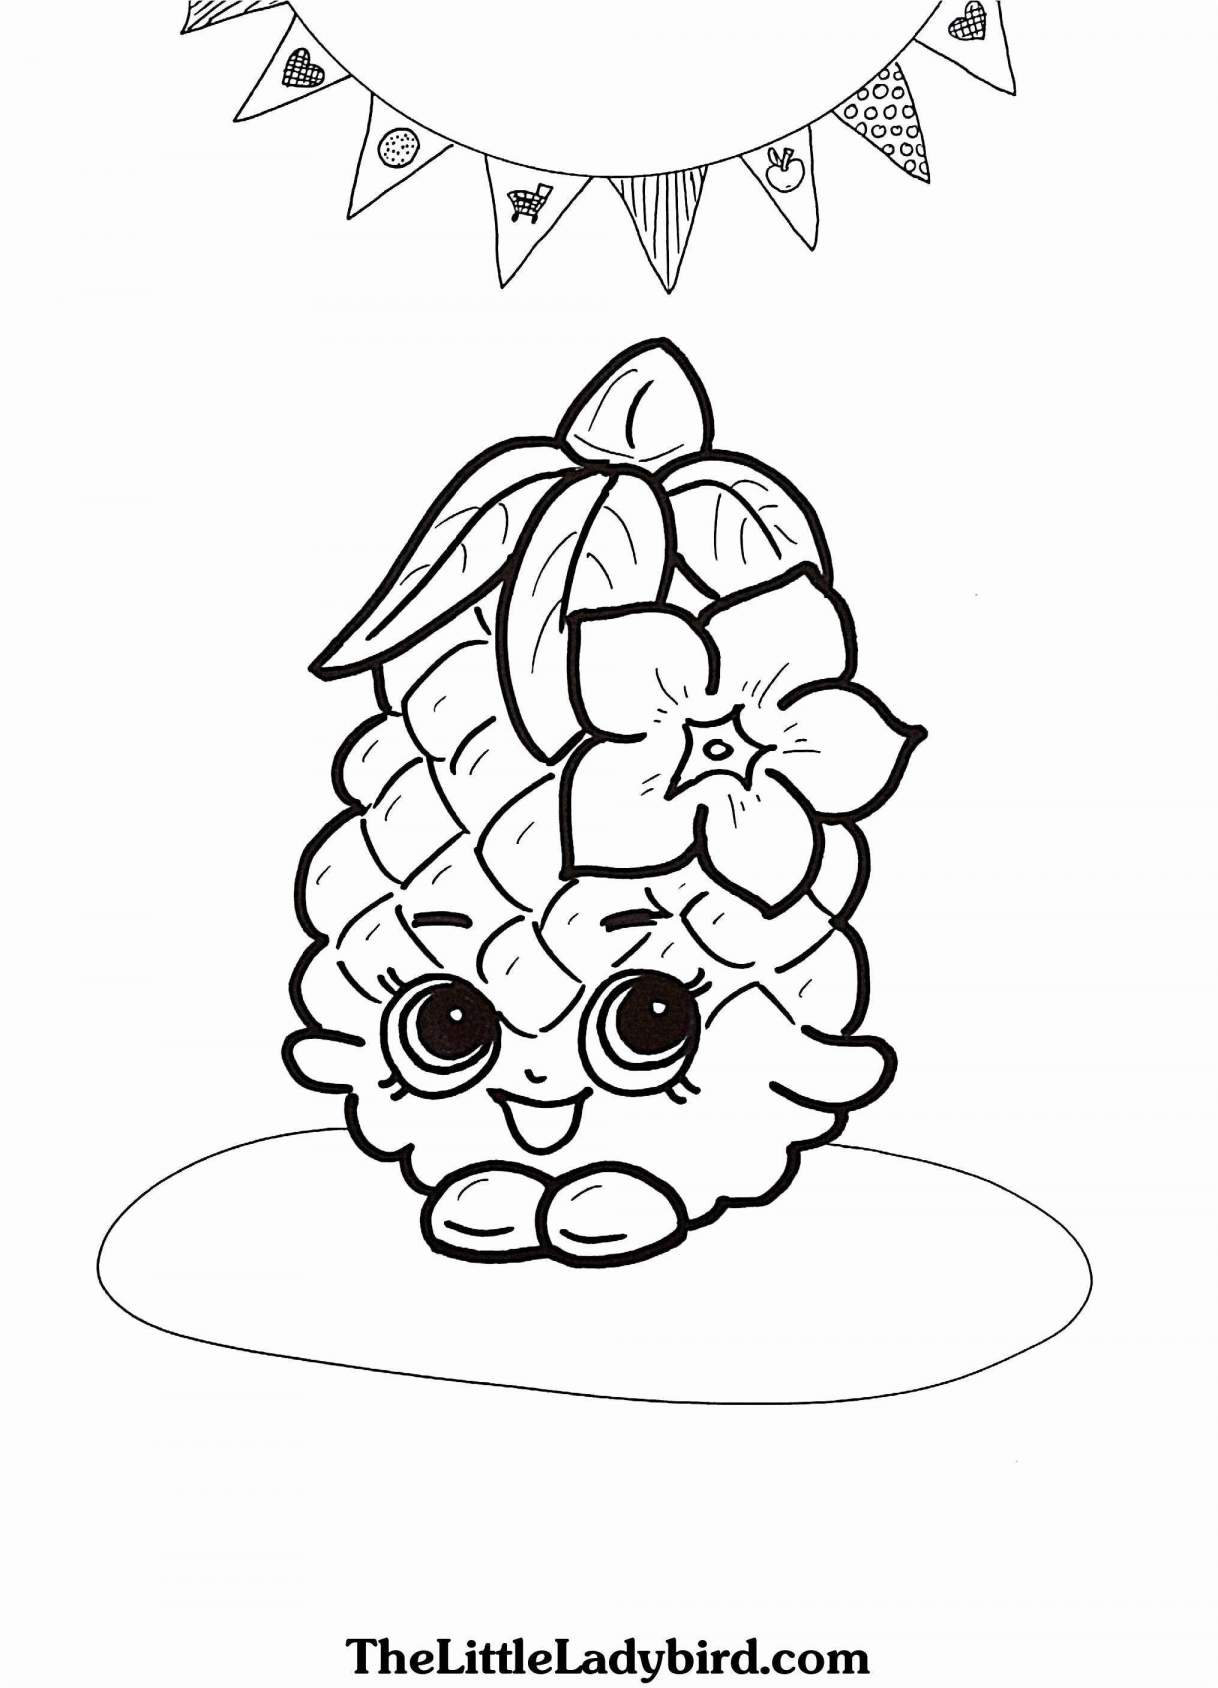 Christmas Coloring Pages Sunday School With Sheets For Printable